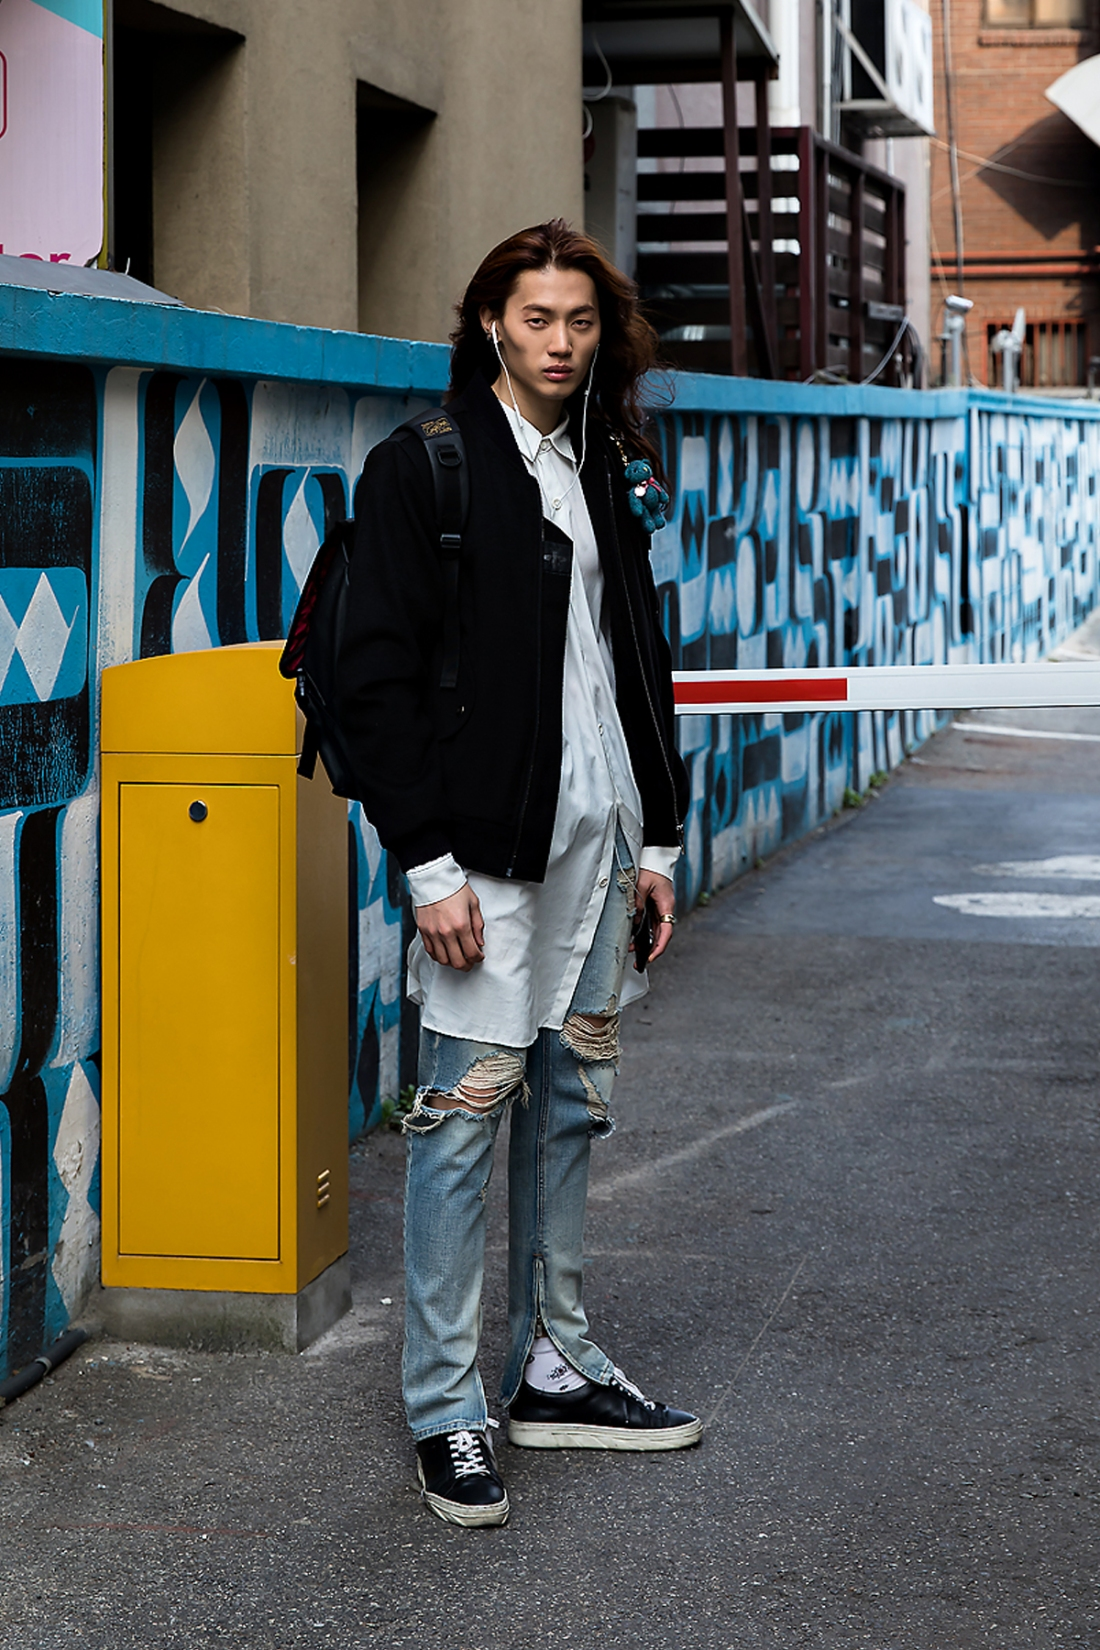 Kim Sungchan, Street Fashion 2017 in Seoul.jpg